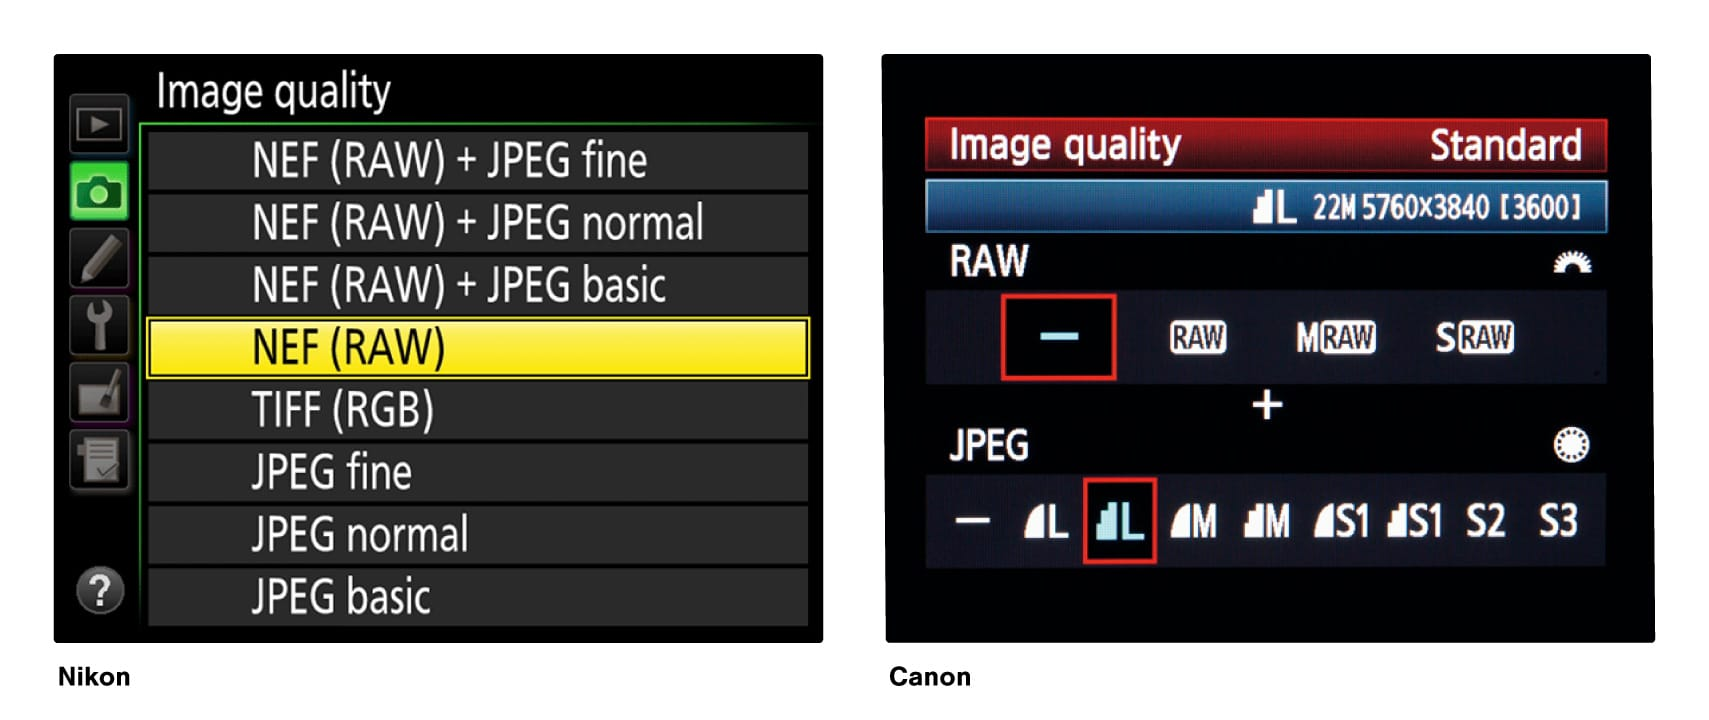 Nikon and Canon image file screens